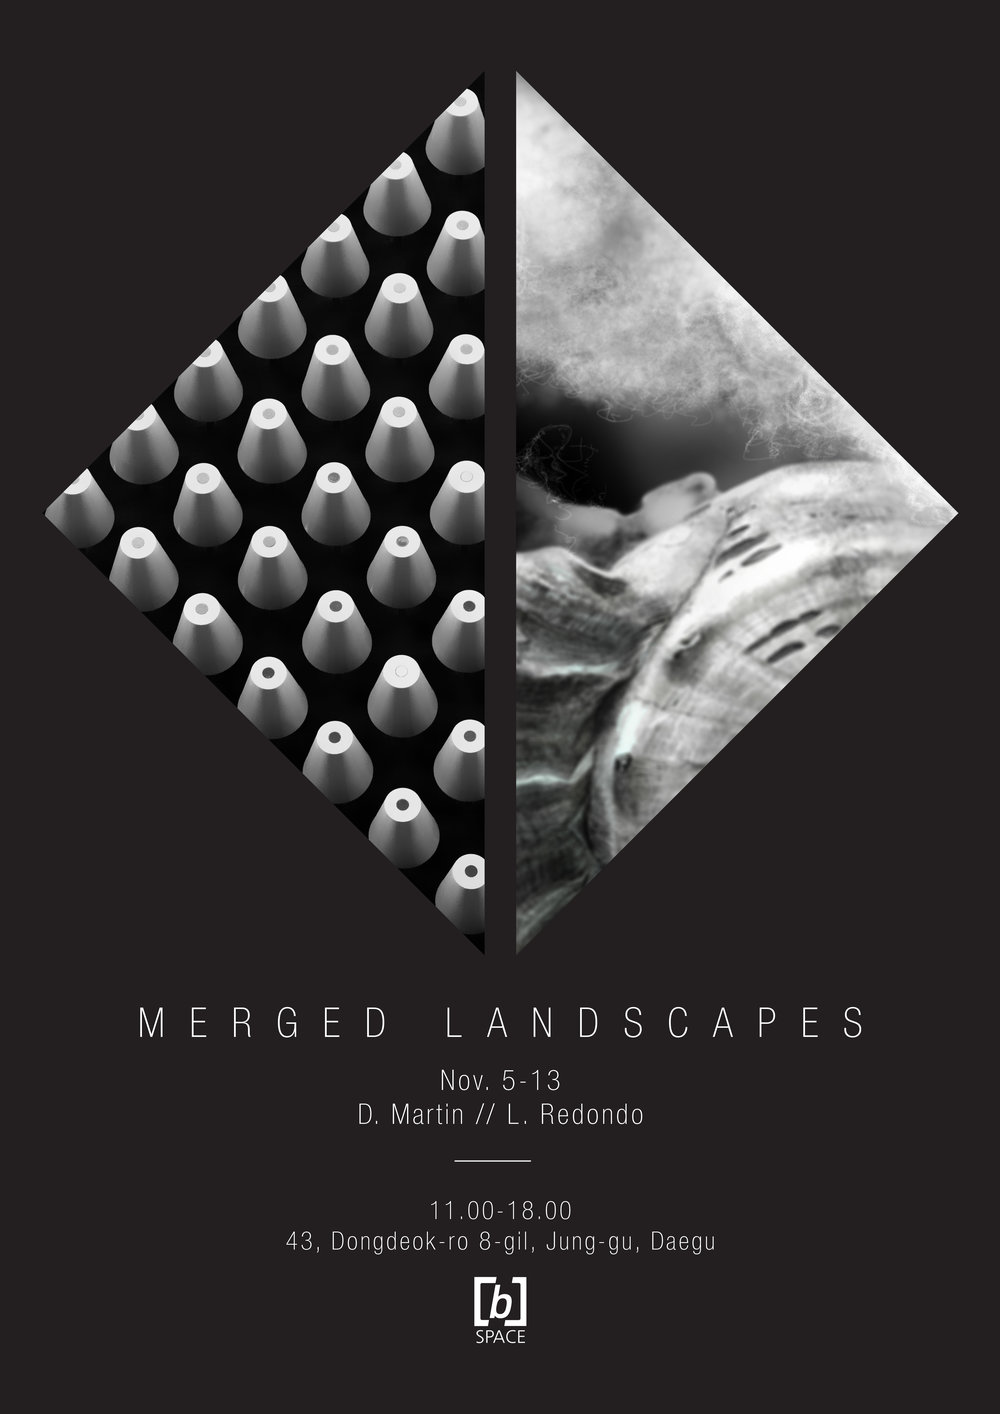 MERGED LANDSCAPES - DAVID Martin // LUCAS RedondoDuo exhibition, November 5 to 13, 2018, at [b]SPACE, Daegu.(opening reception party, Nov.5, 6 pm.)